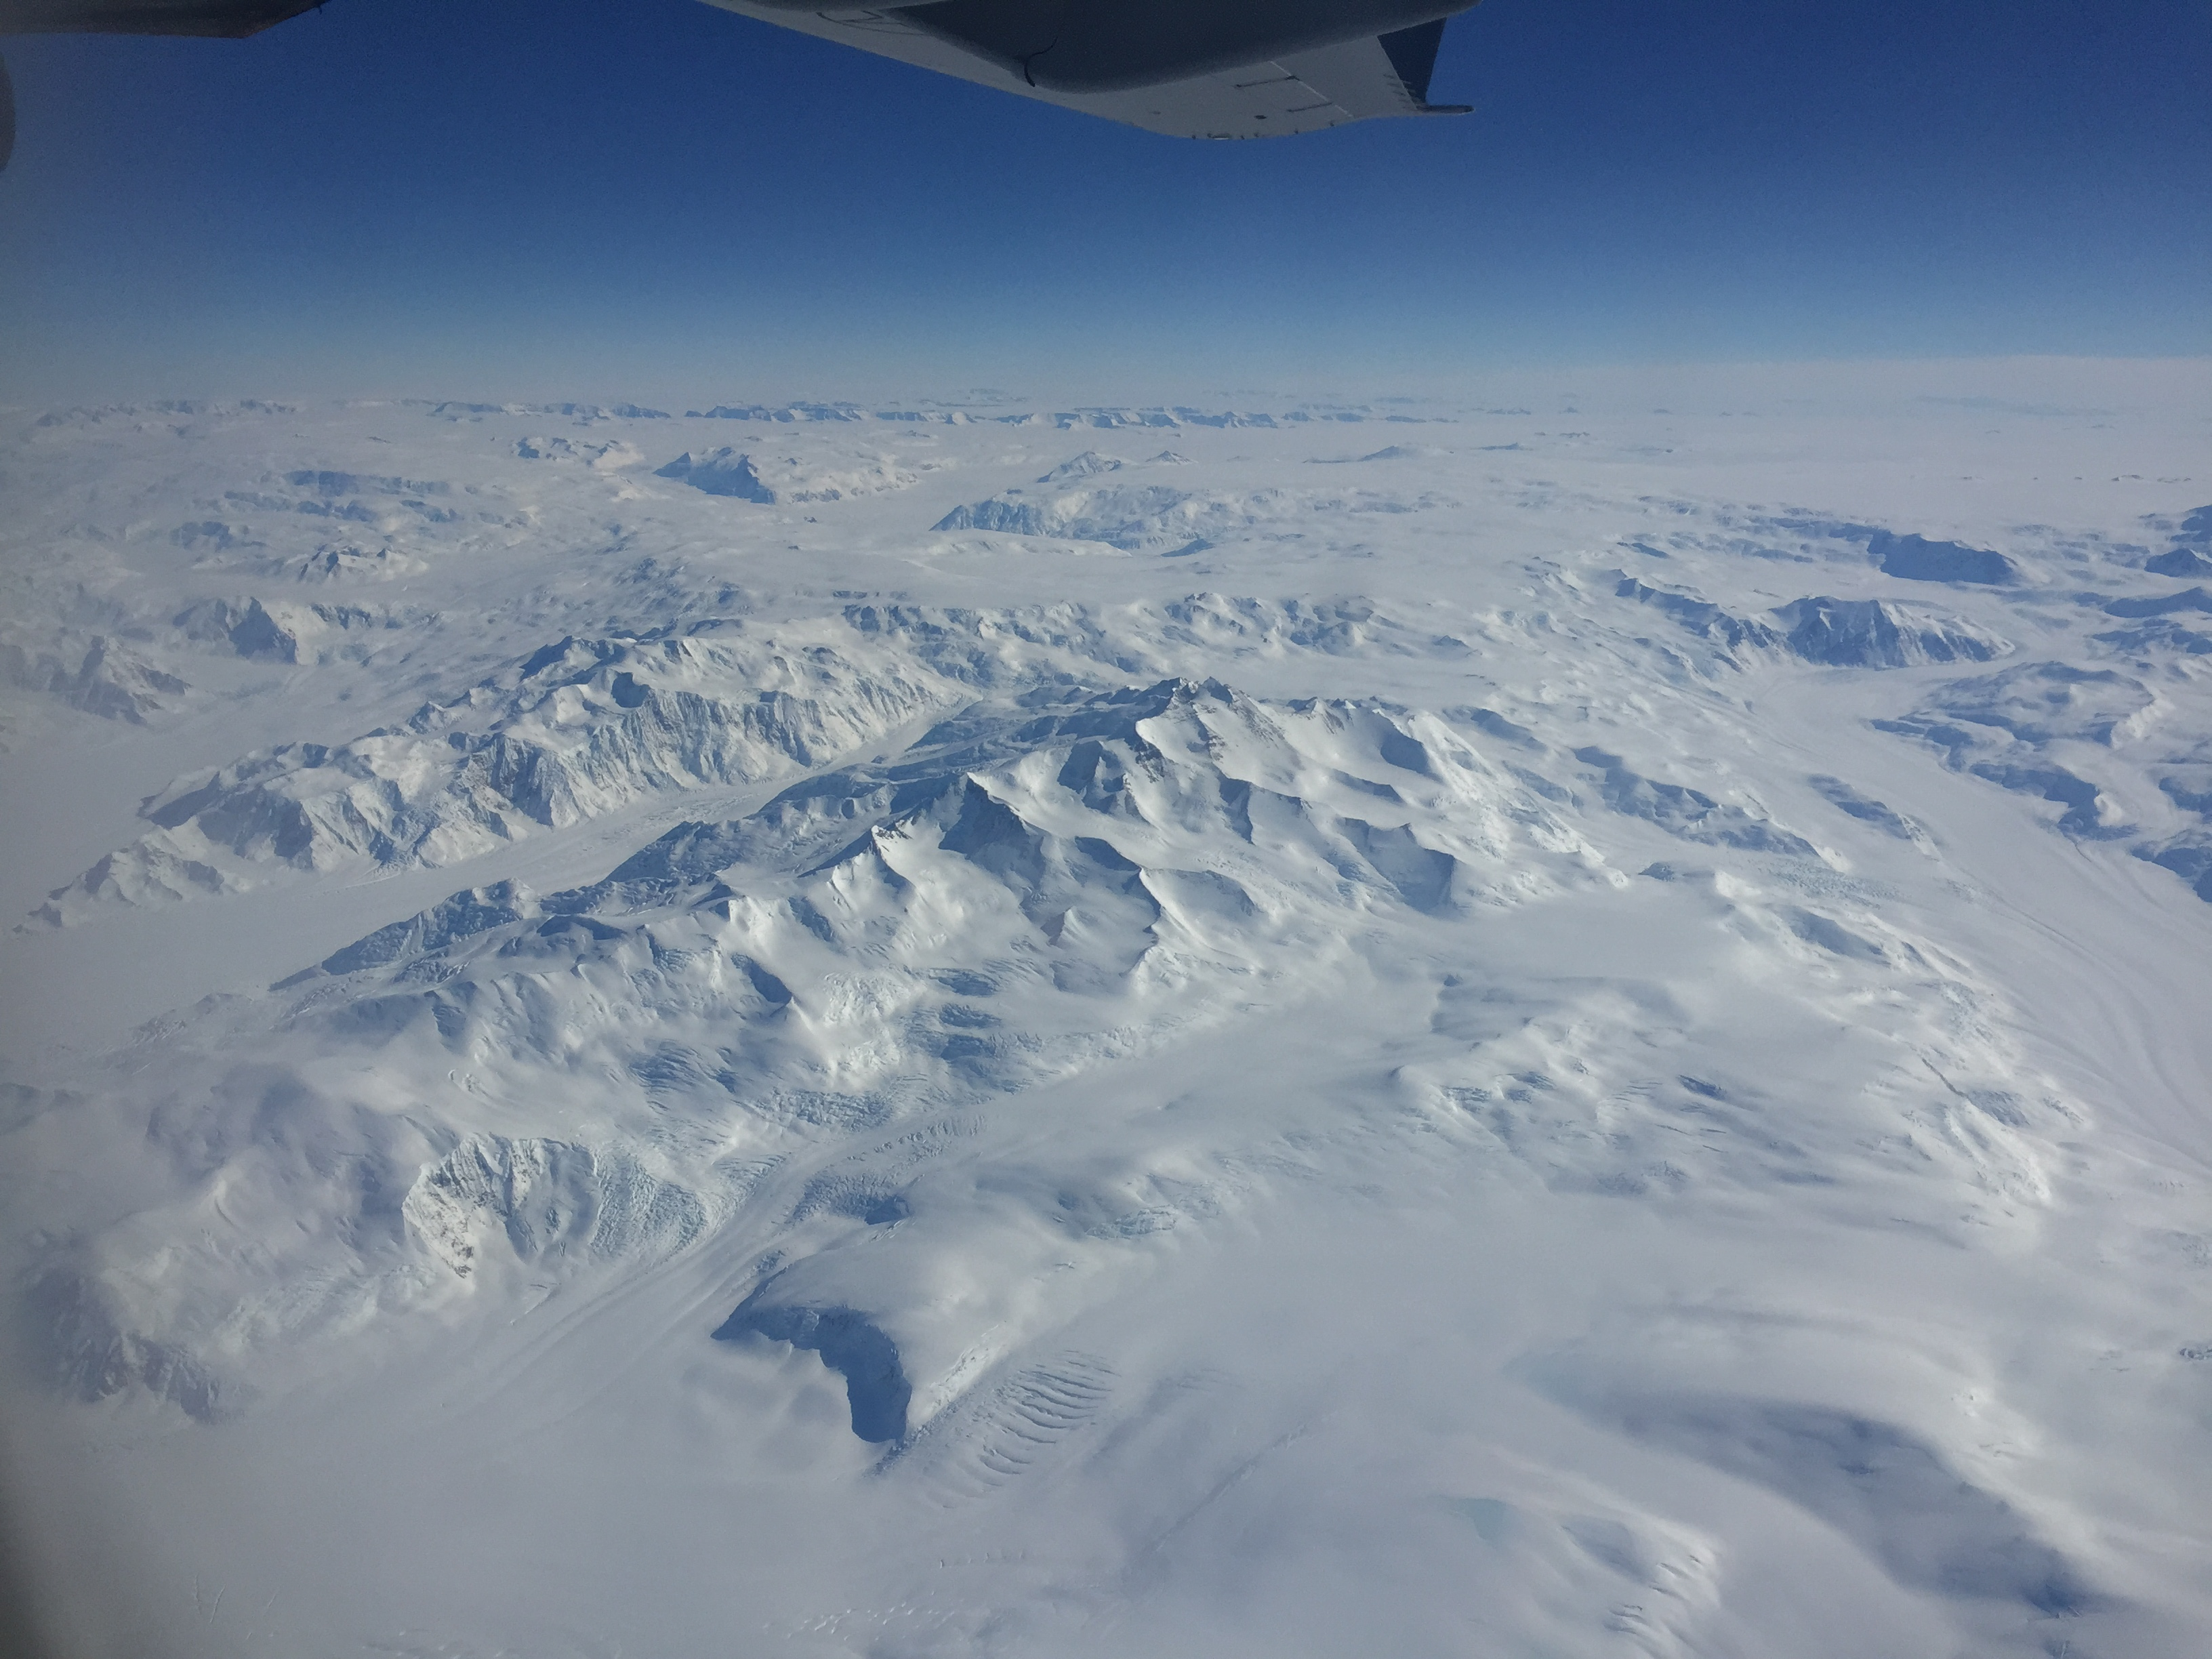 Pretty epic views on the way there. It's difficult to tell the scale of the mountains in the left photo given how much snow has pilled up. On the right, you can see what I think is a bit of the unfrozen ocean.